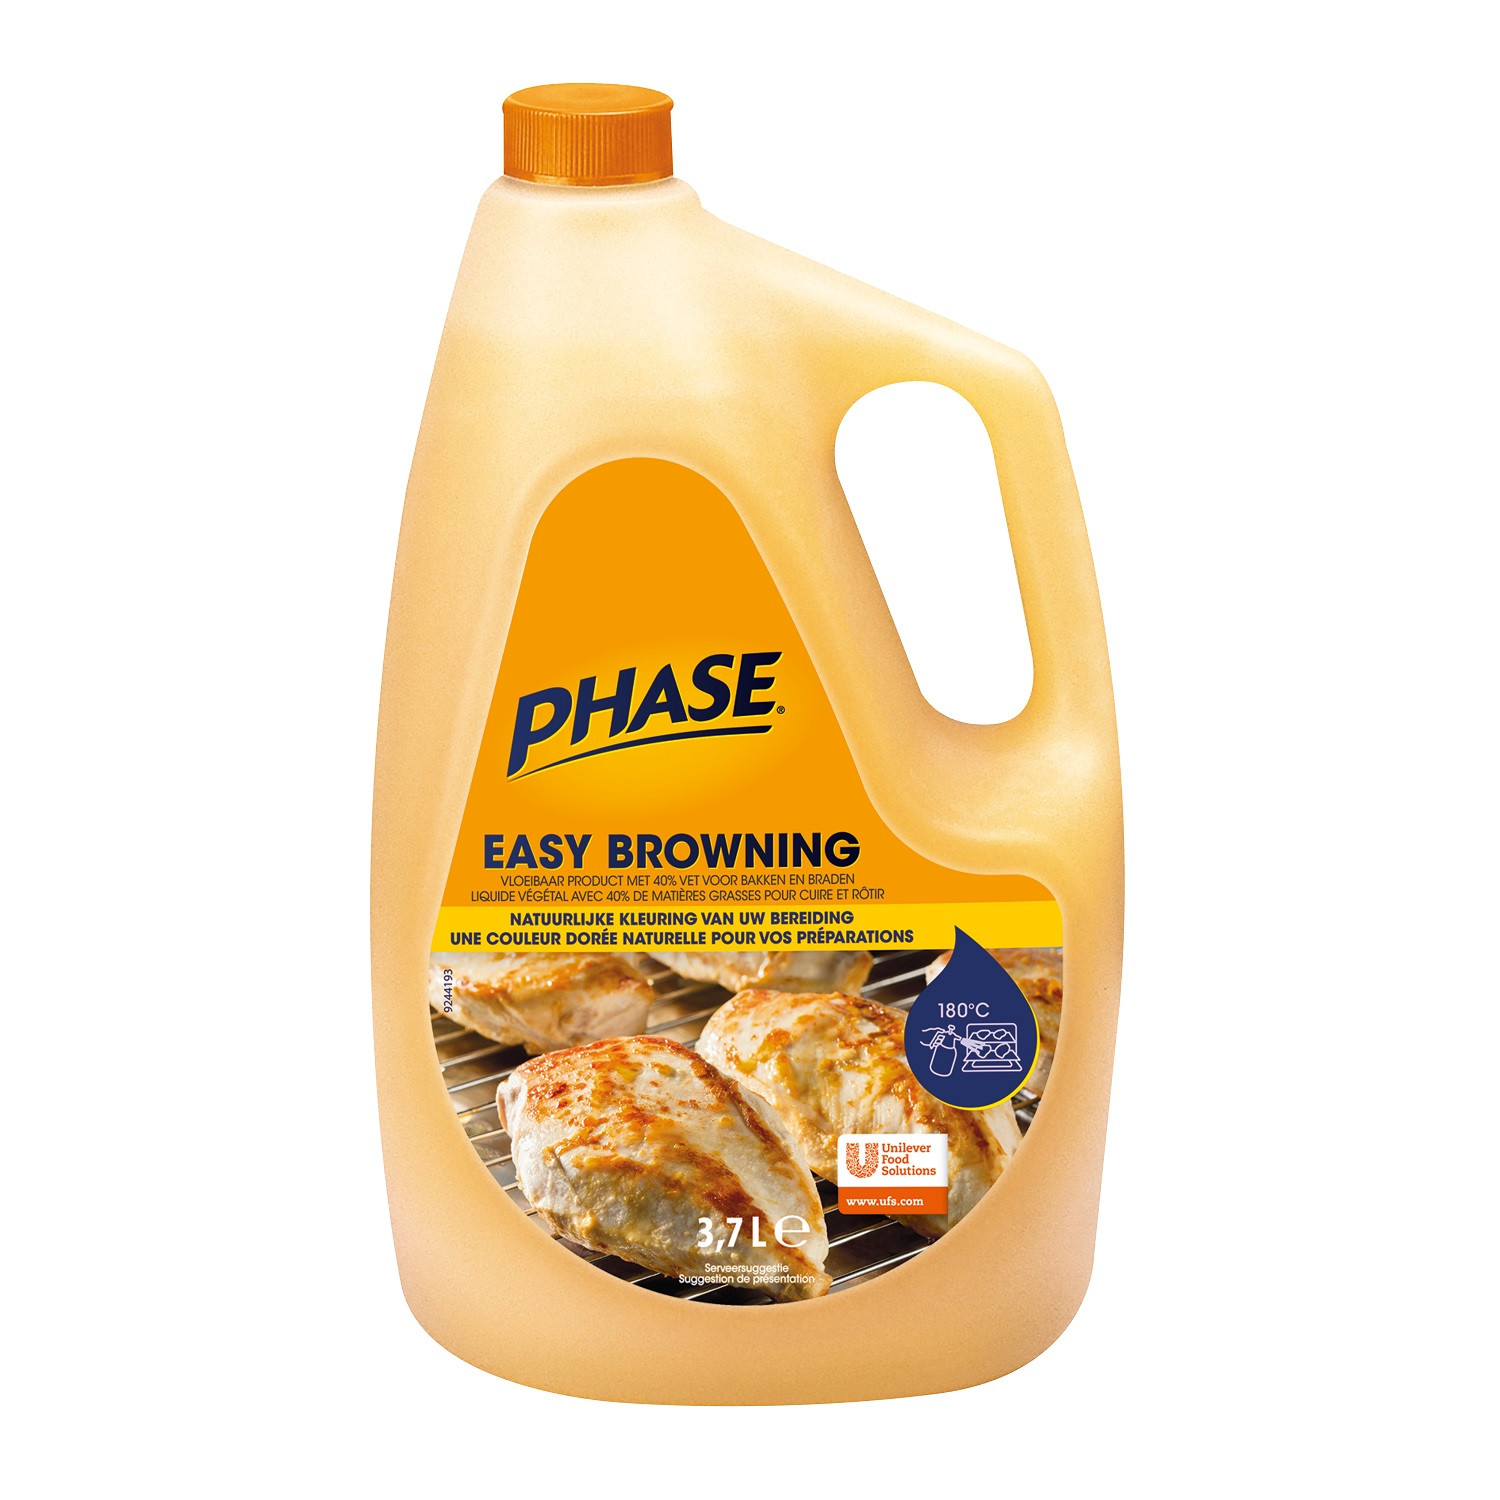 Phase Easy Browning 3.7L